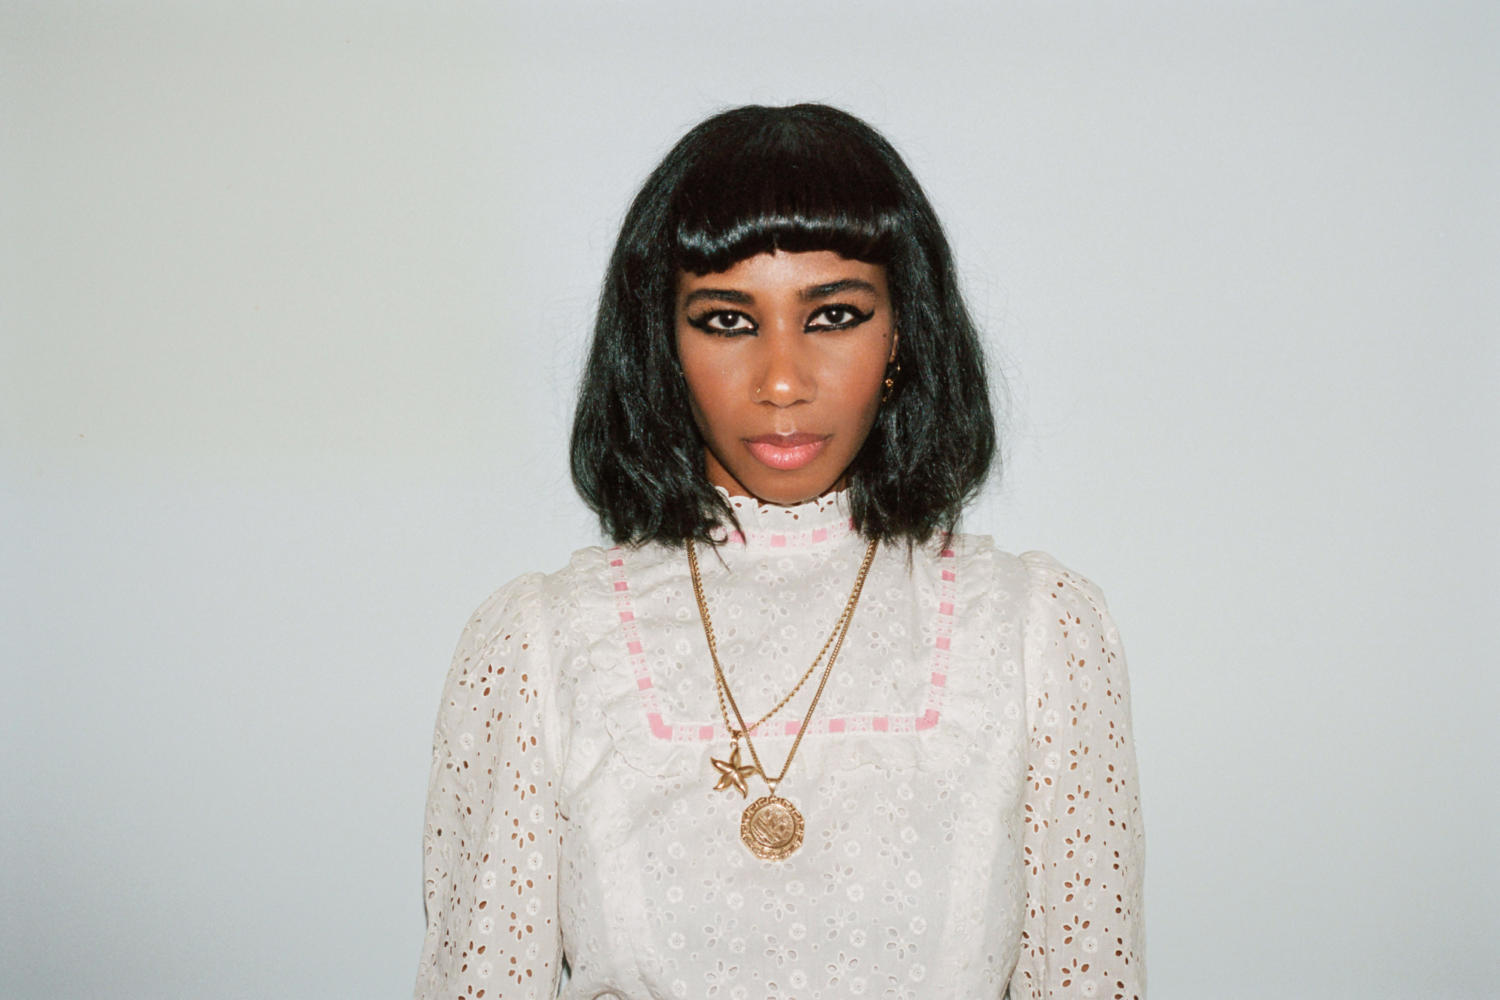 Santigold releases surprise mixtape 'I Don't Want: The Gold Fire Sessions'